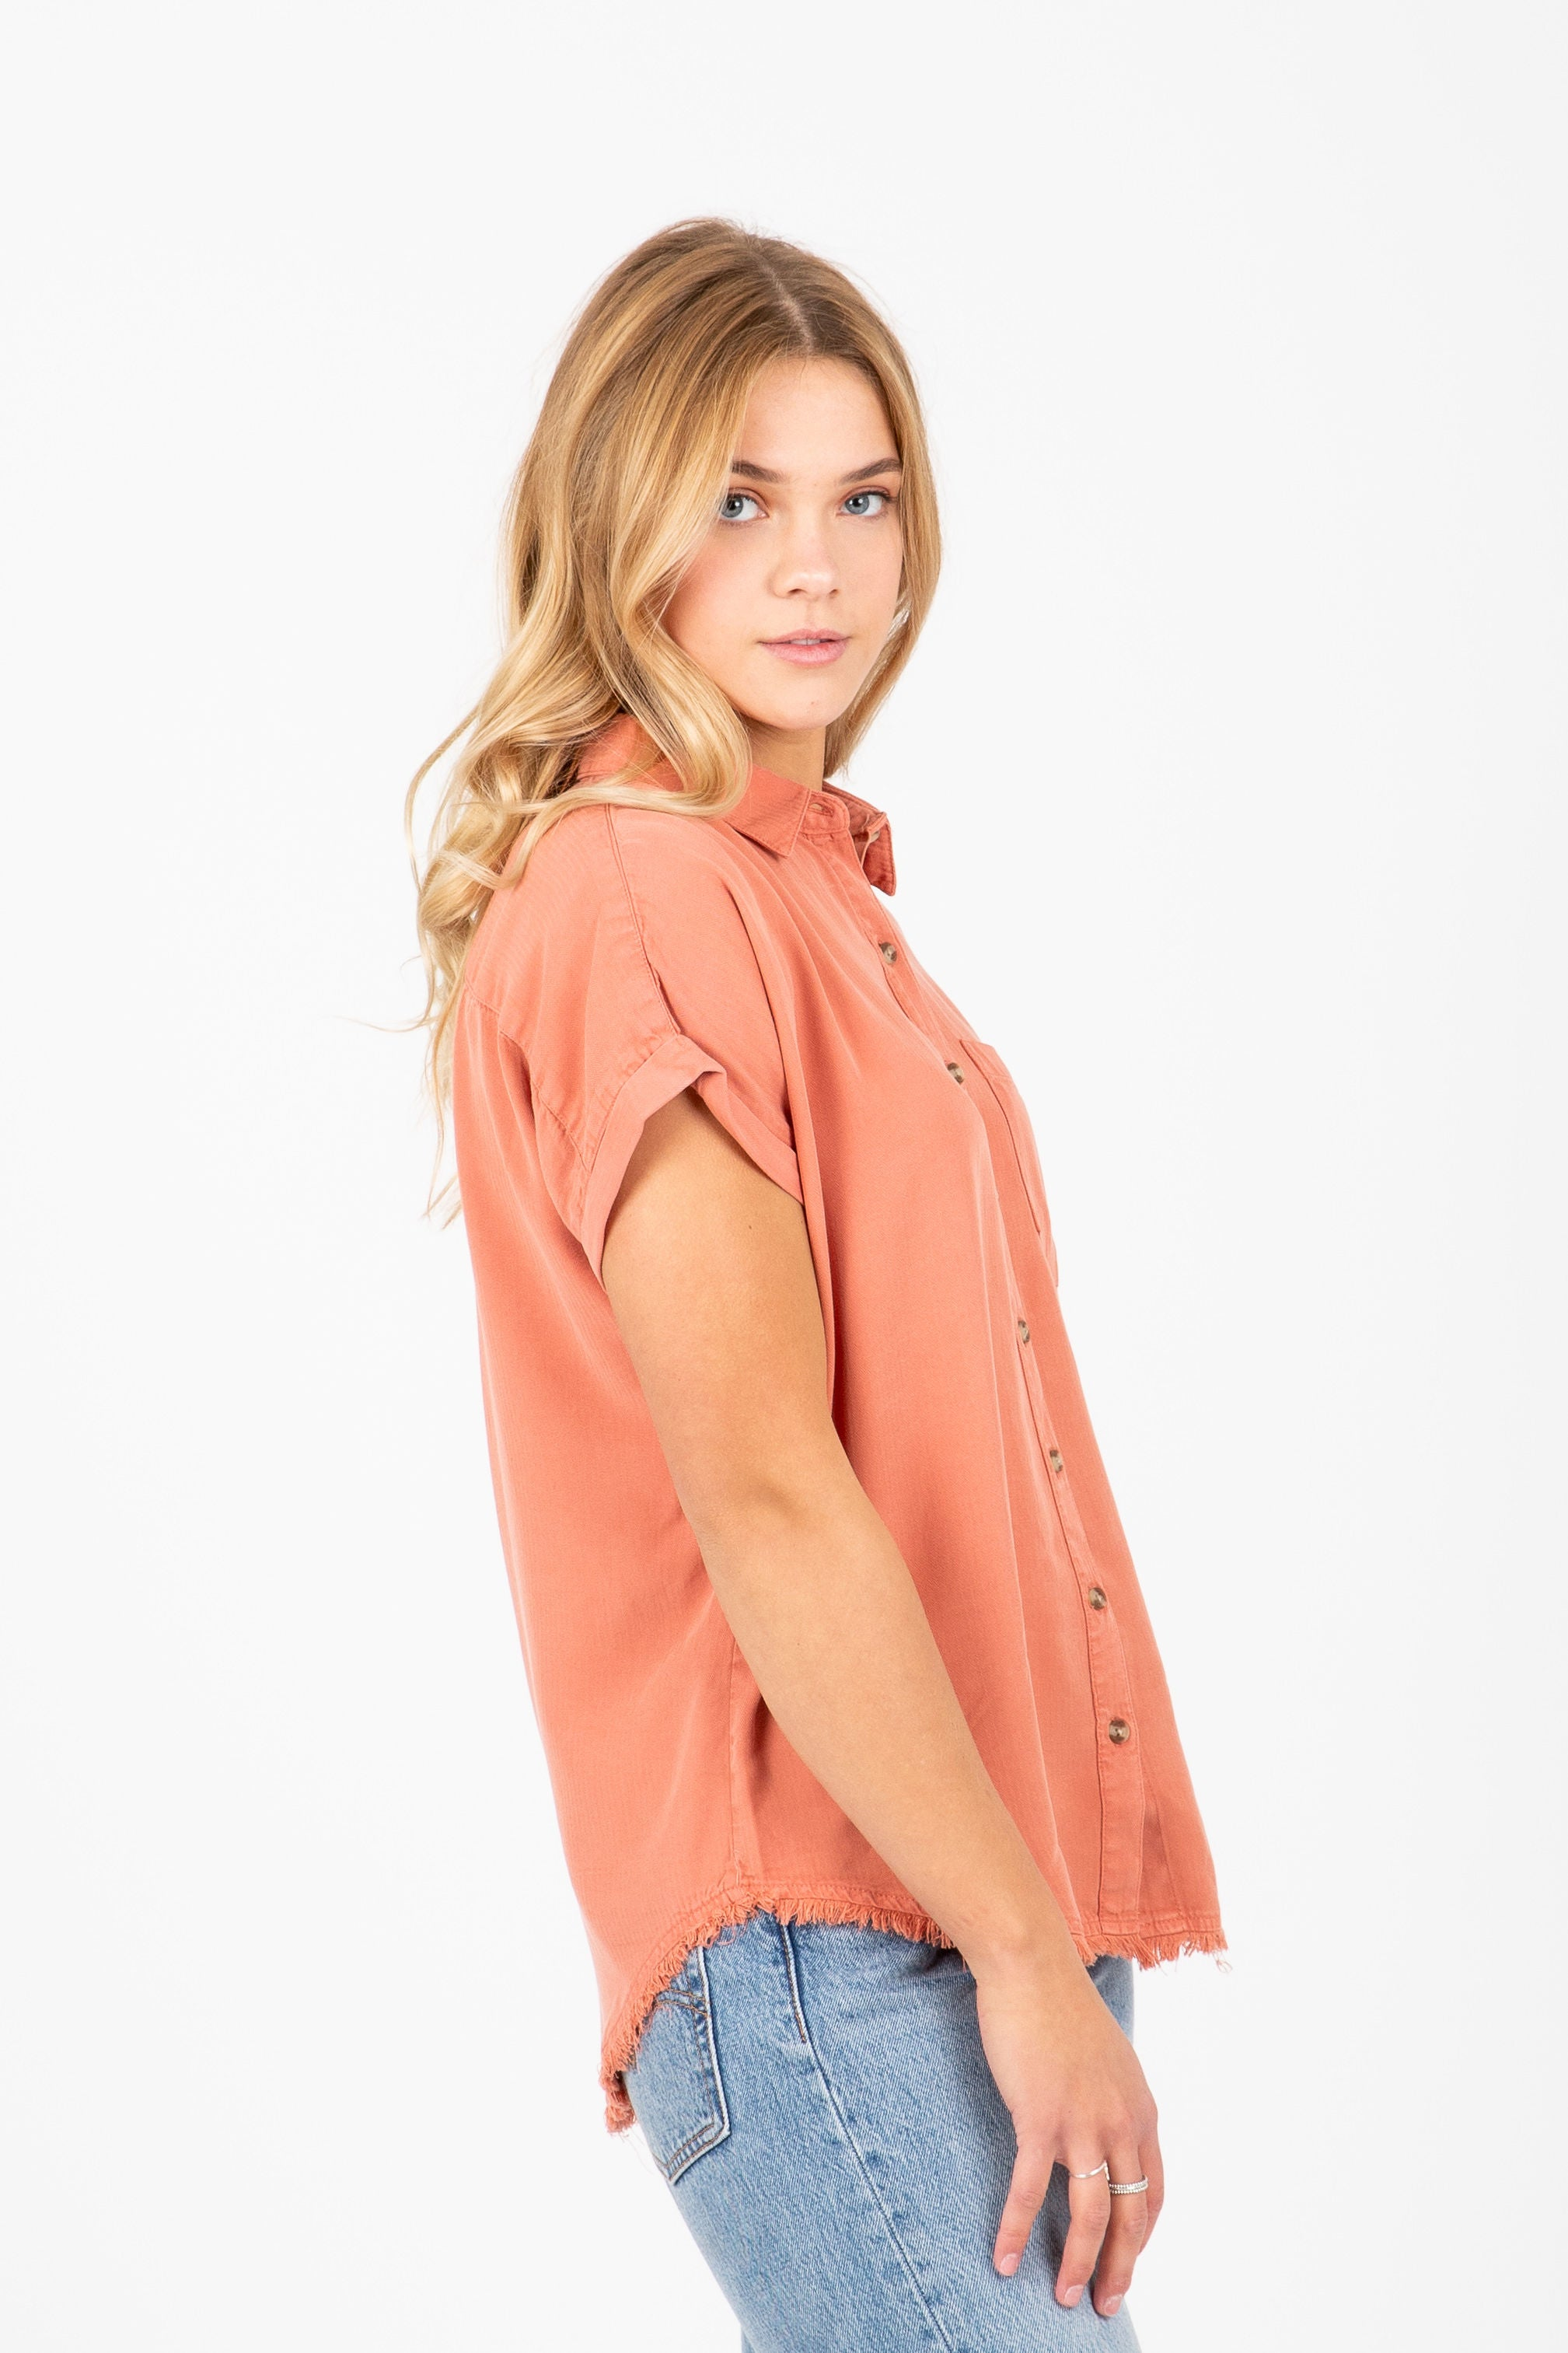 The Nora Button Up Shirt in Rosewood